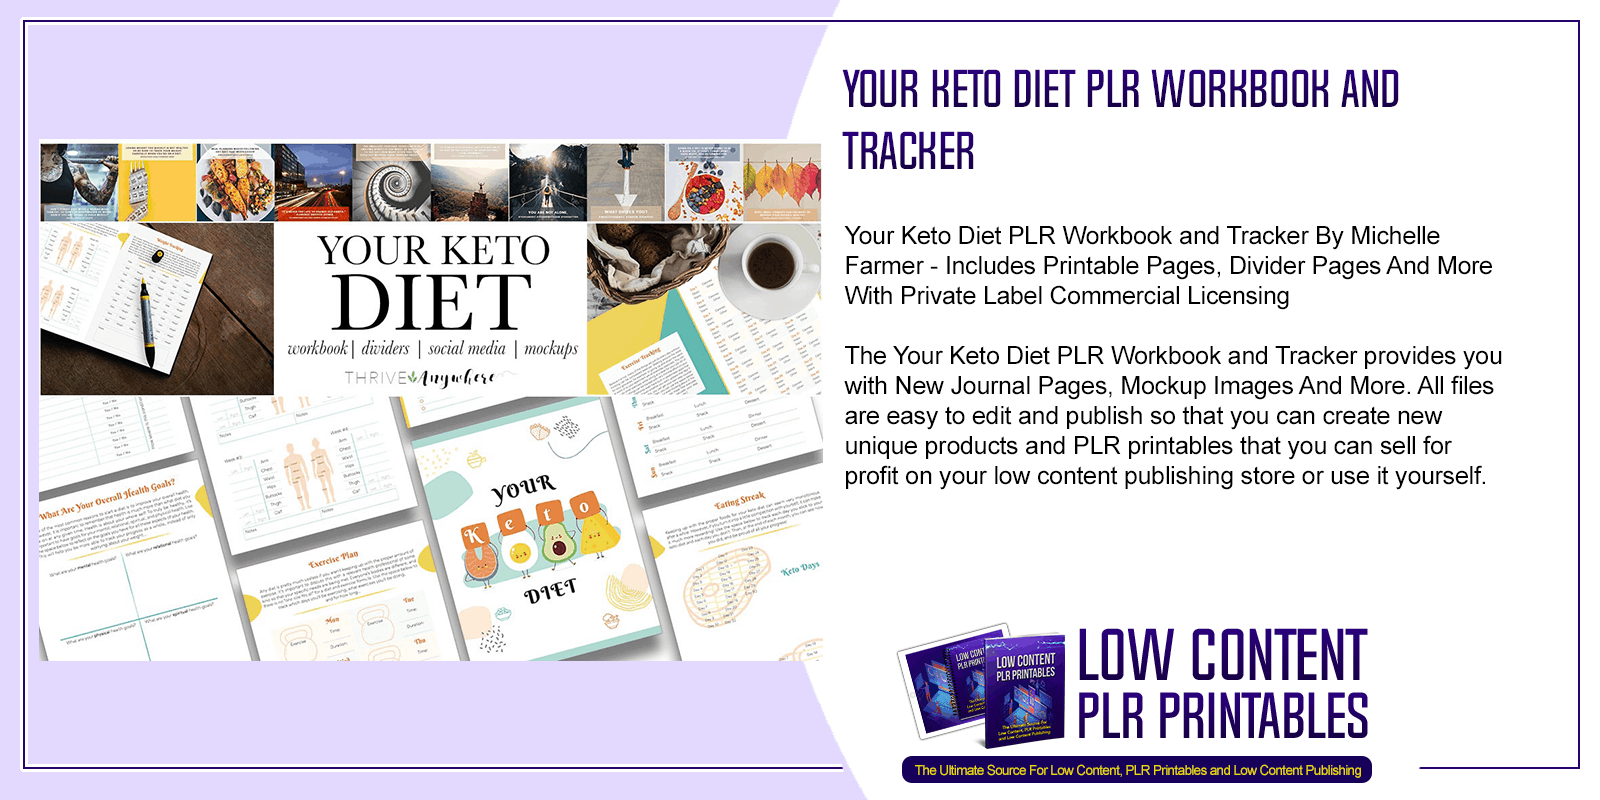 Your Keto Diet PLR Workbook and Tracker